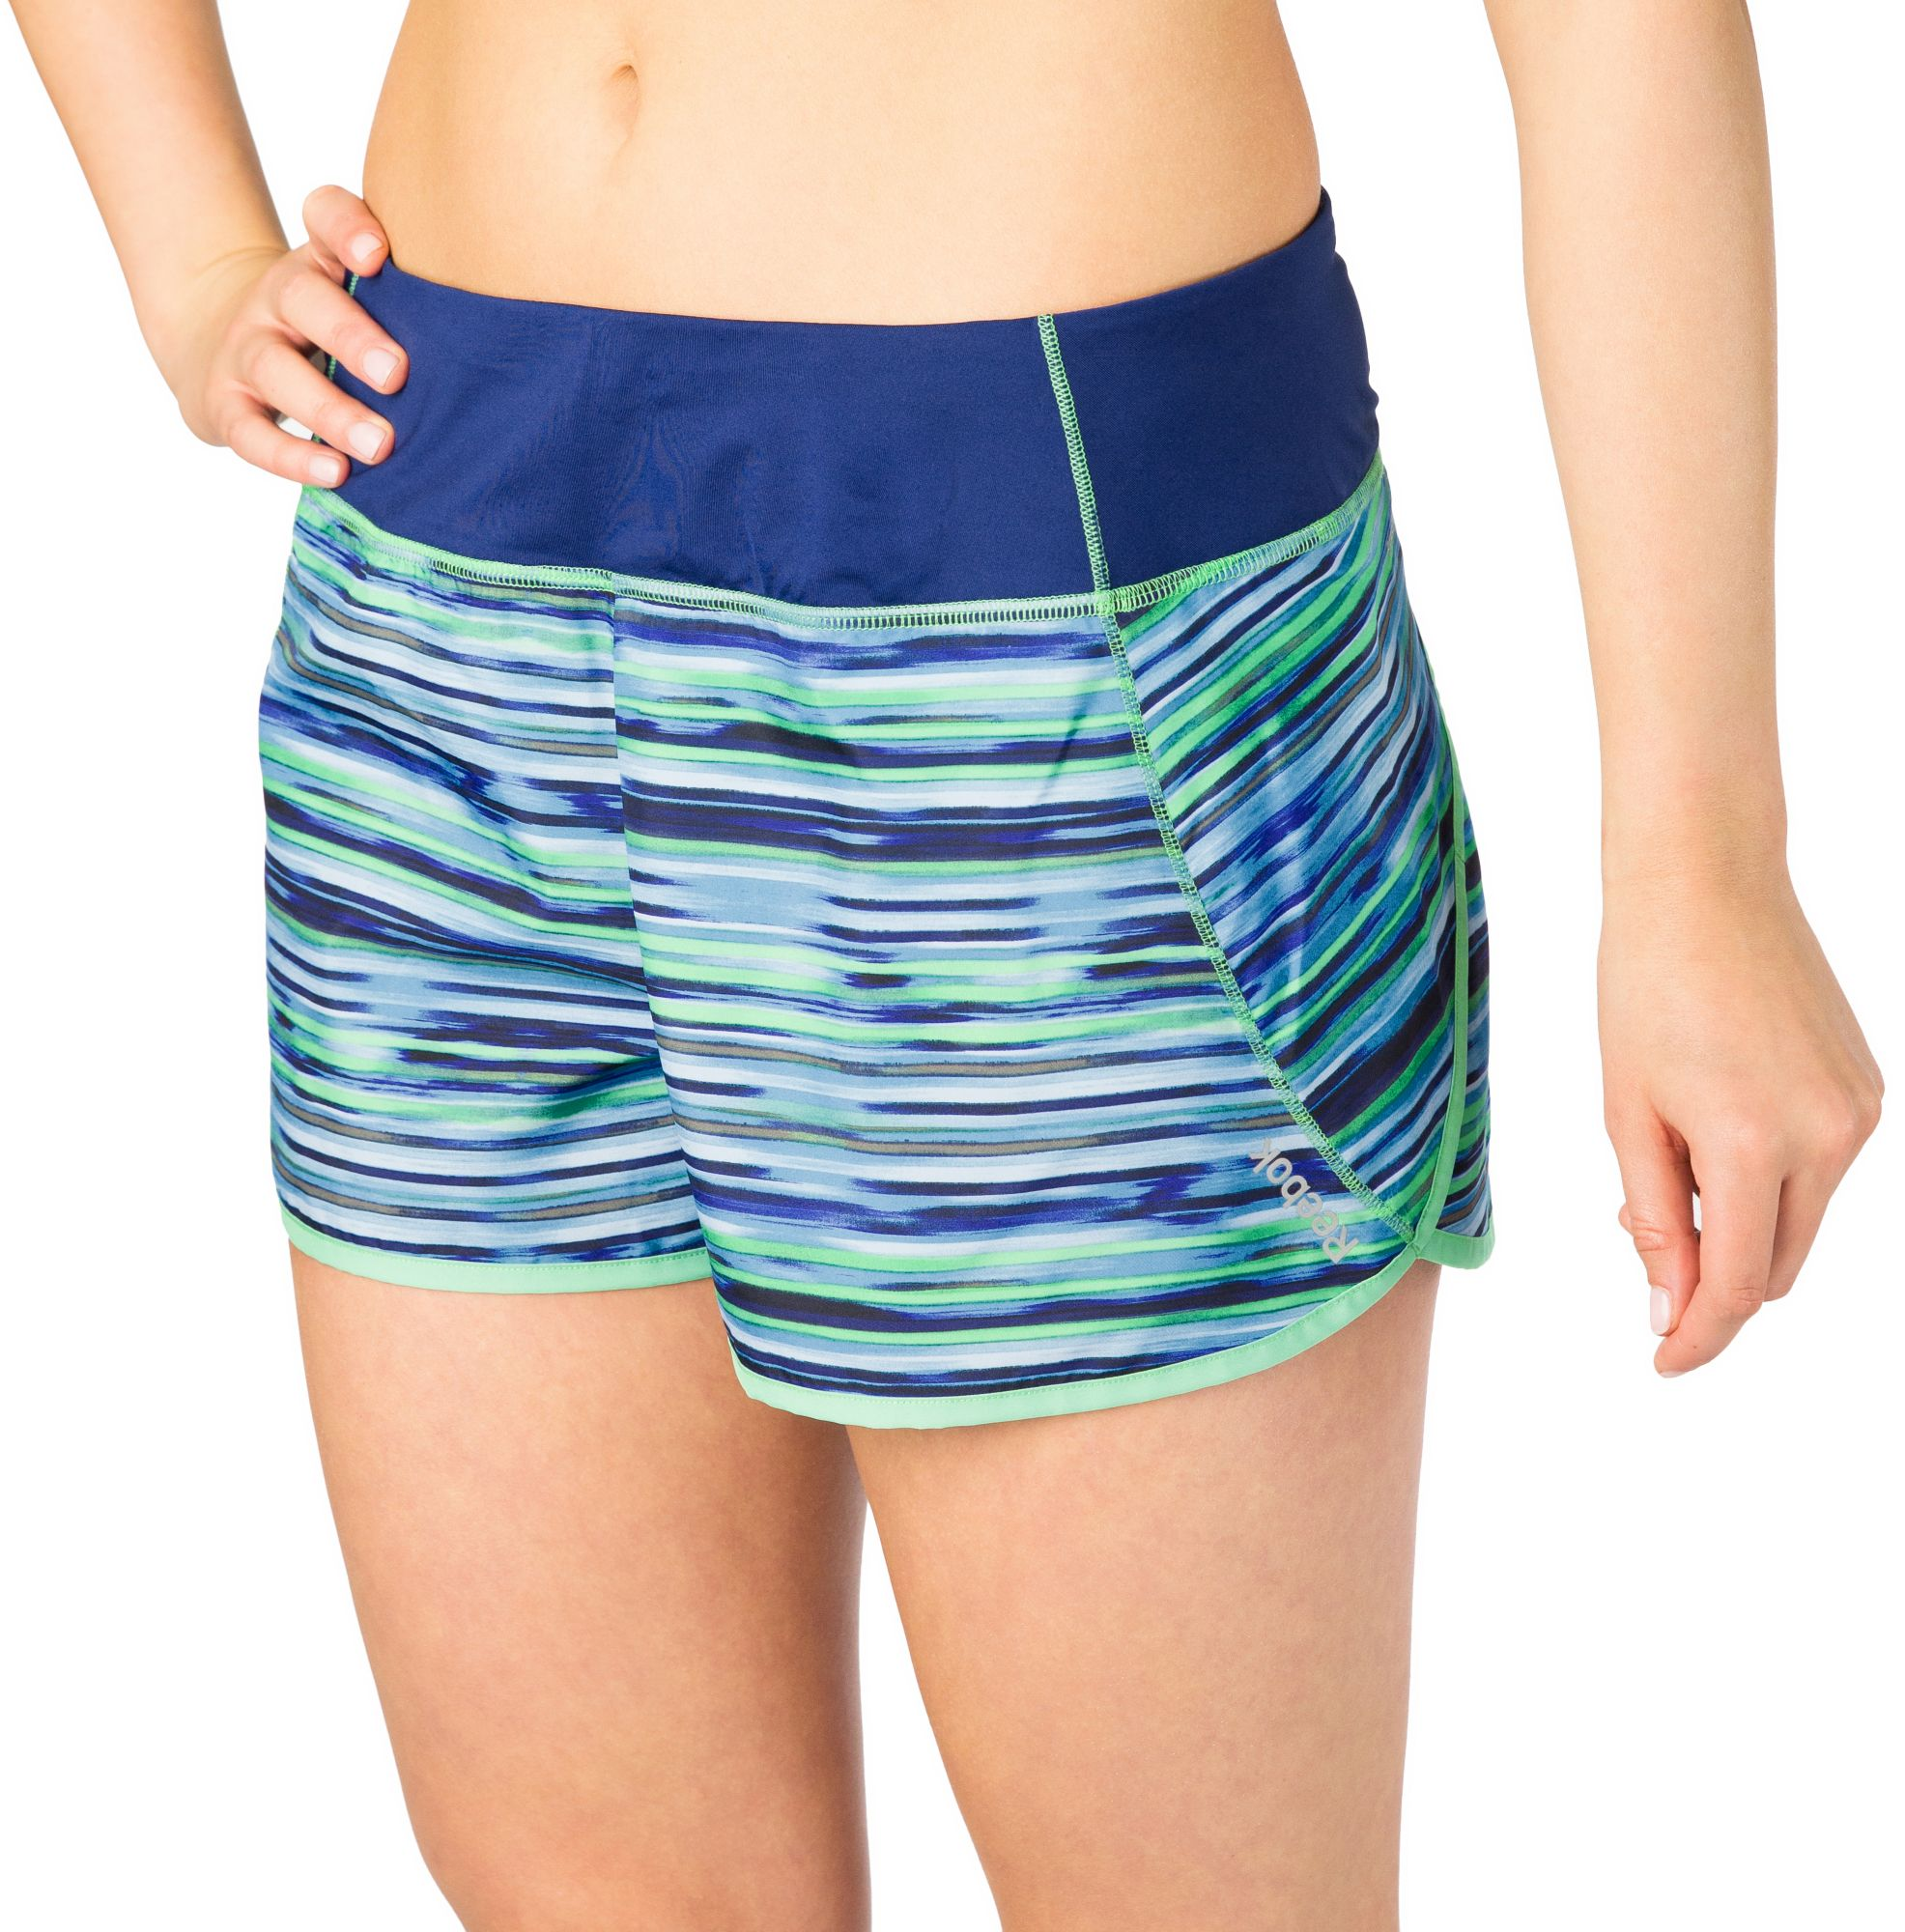 Nike womens running shorts with liner - Product Image Reebok Women S Printed Running Shorts